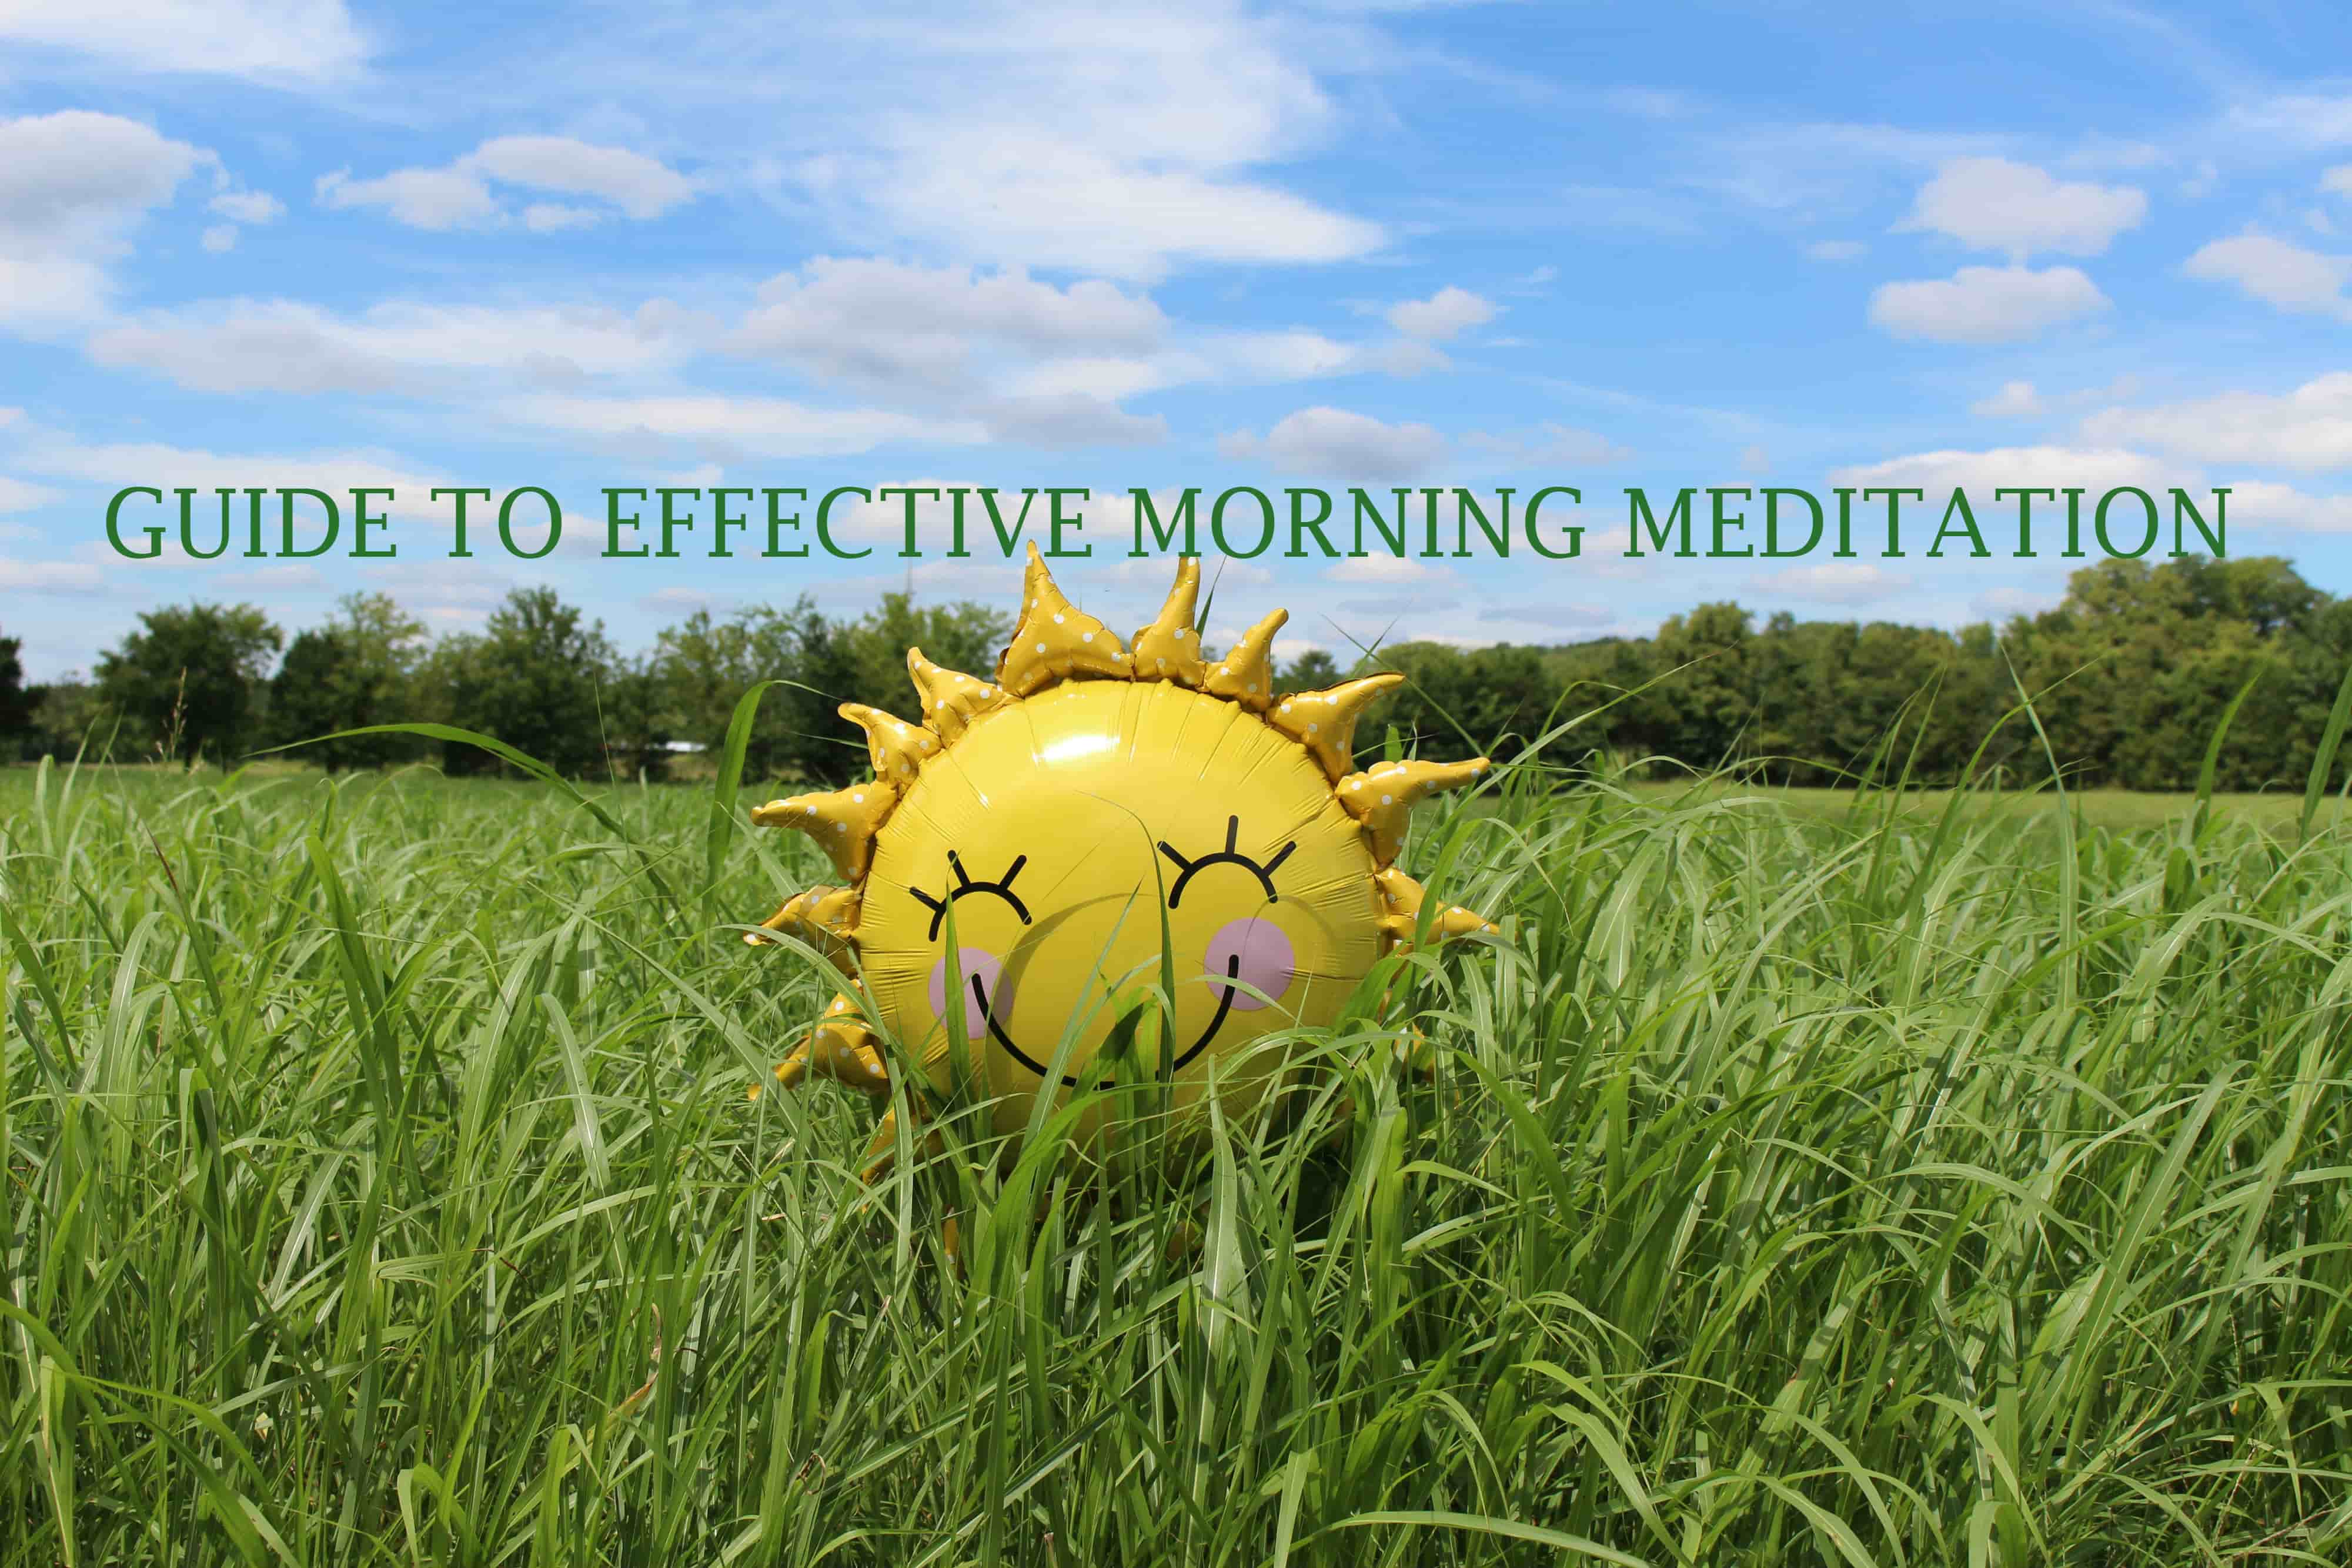 GUIDE TO EFFECTIVE MORNING MEDITATION